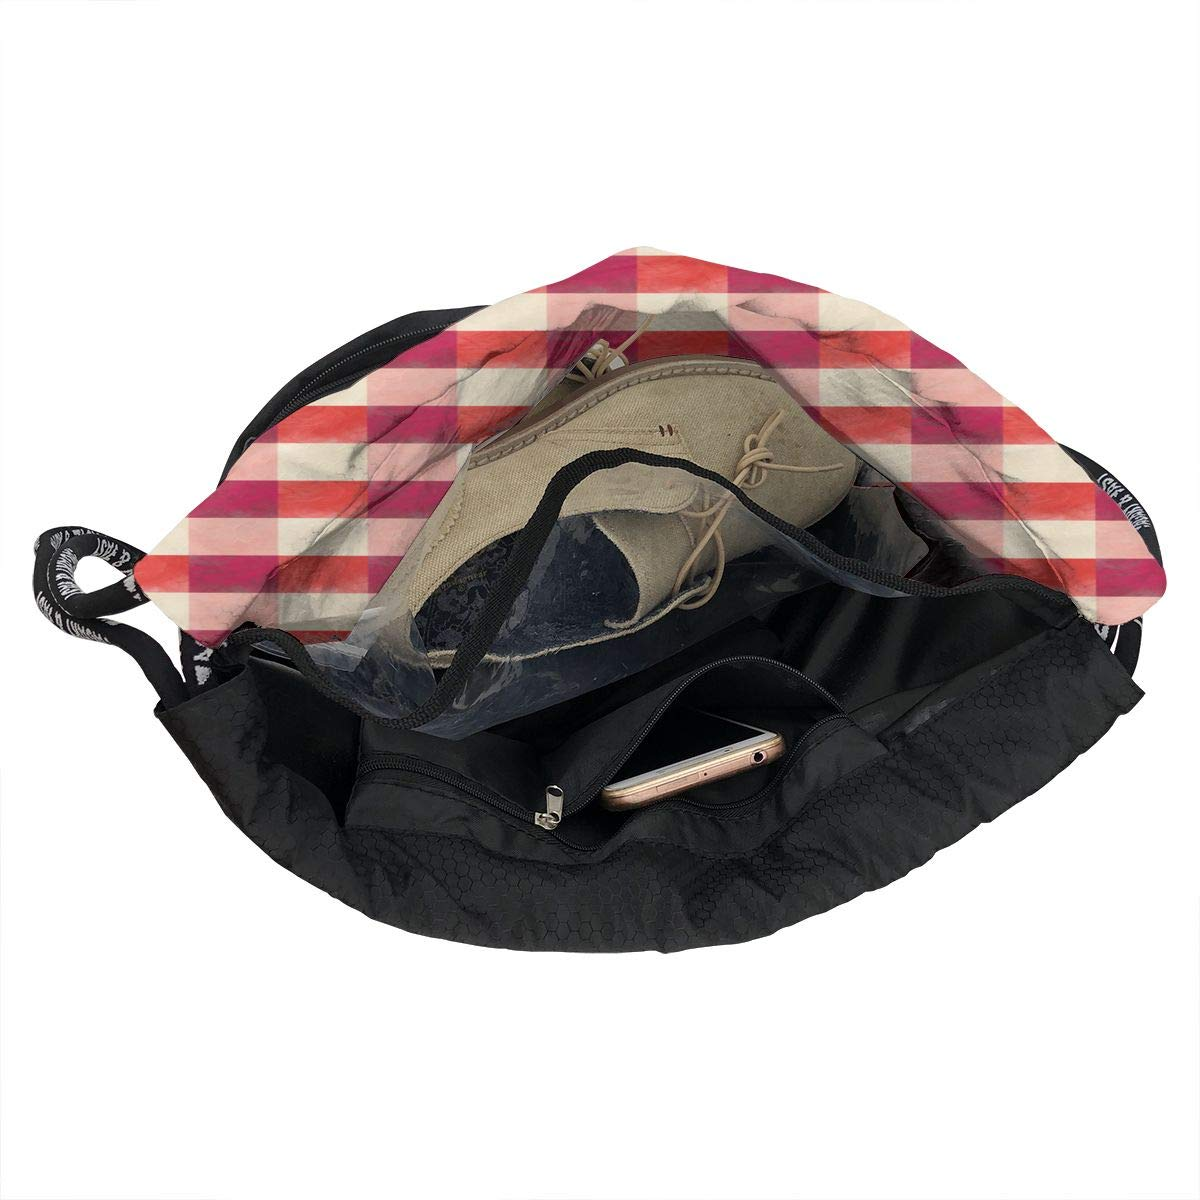 Old Gingham Drawstring Backpack Sports Athletic Gym Cinch Sack String Storage Bags for Hiking Travel Beach